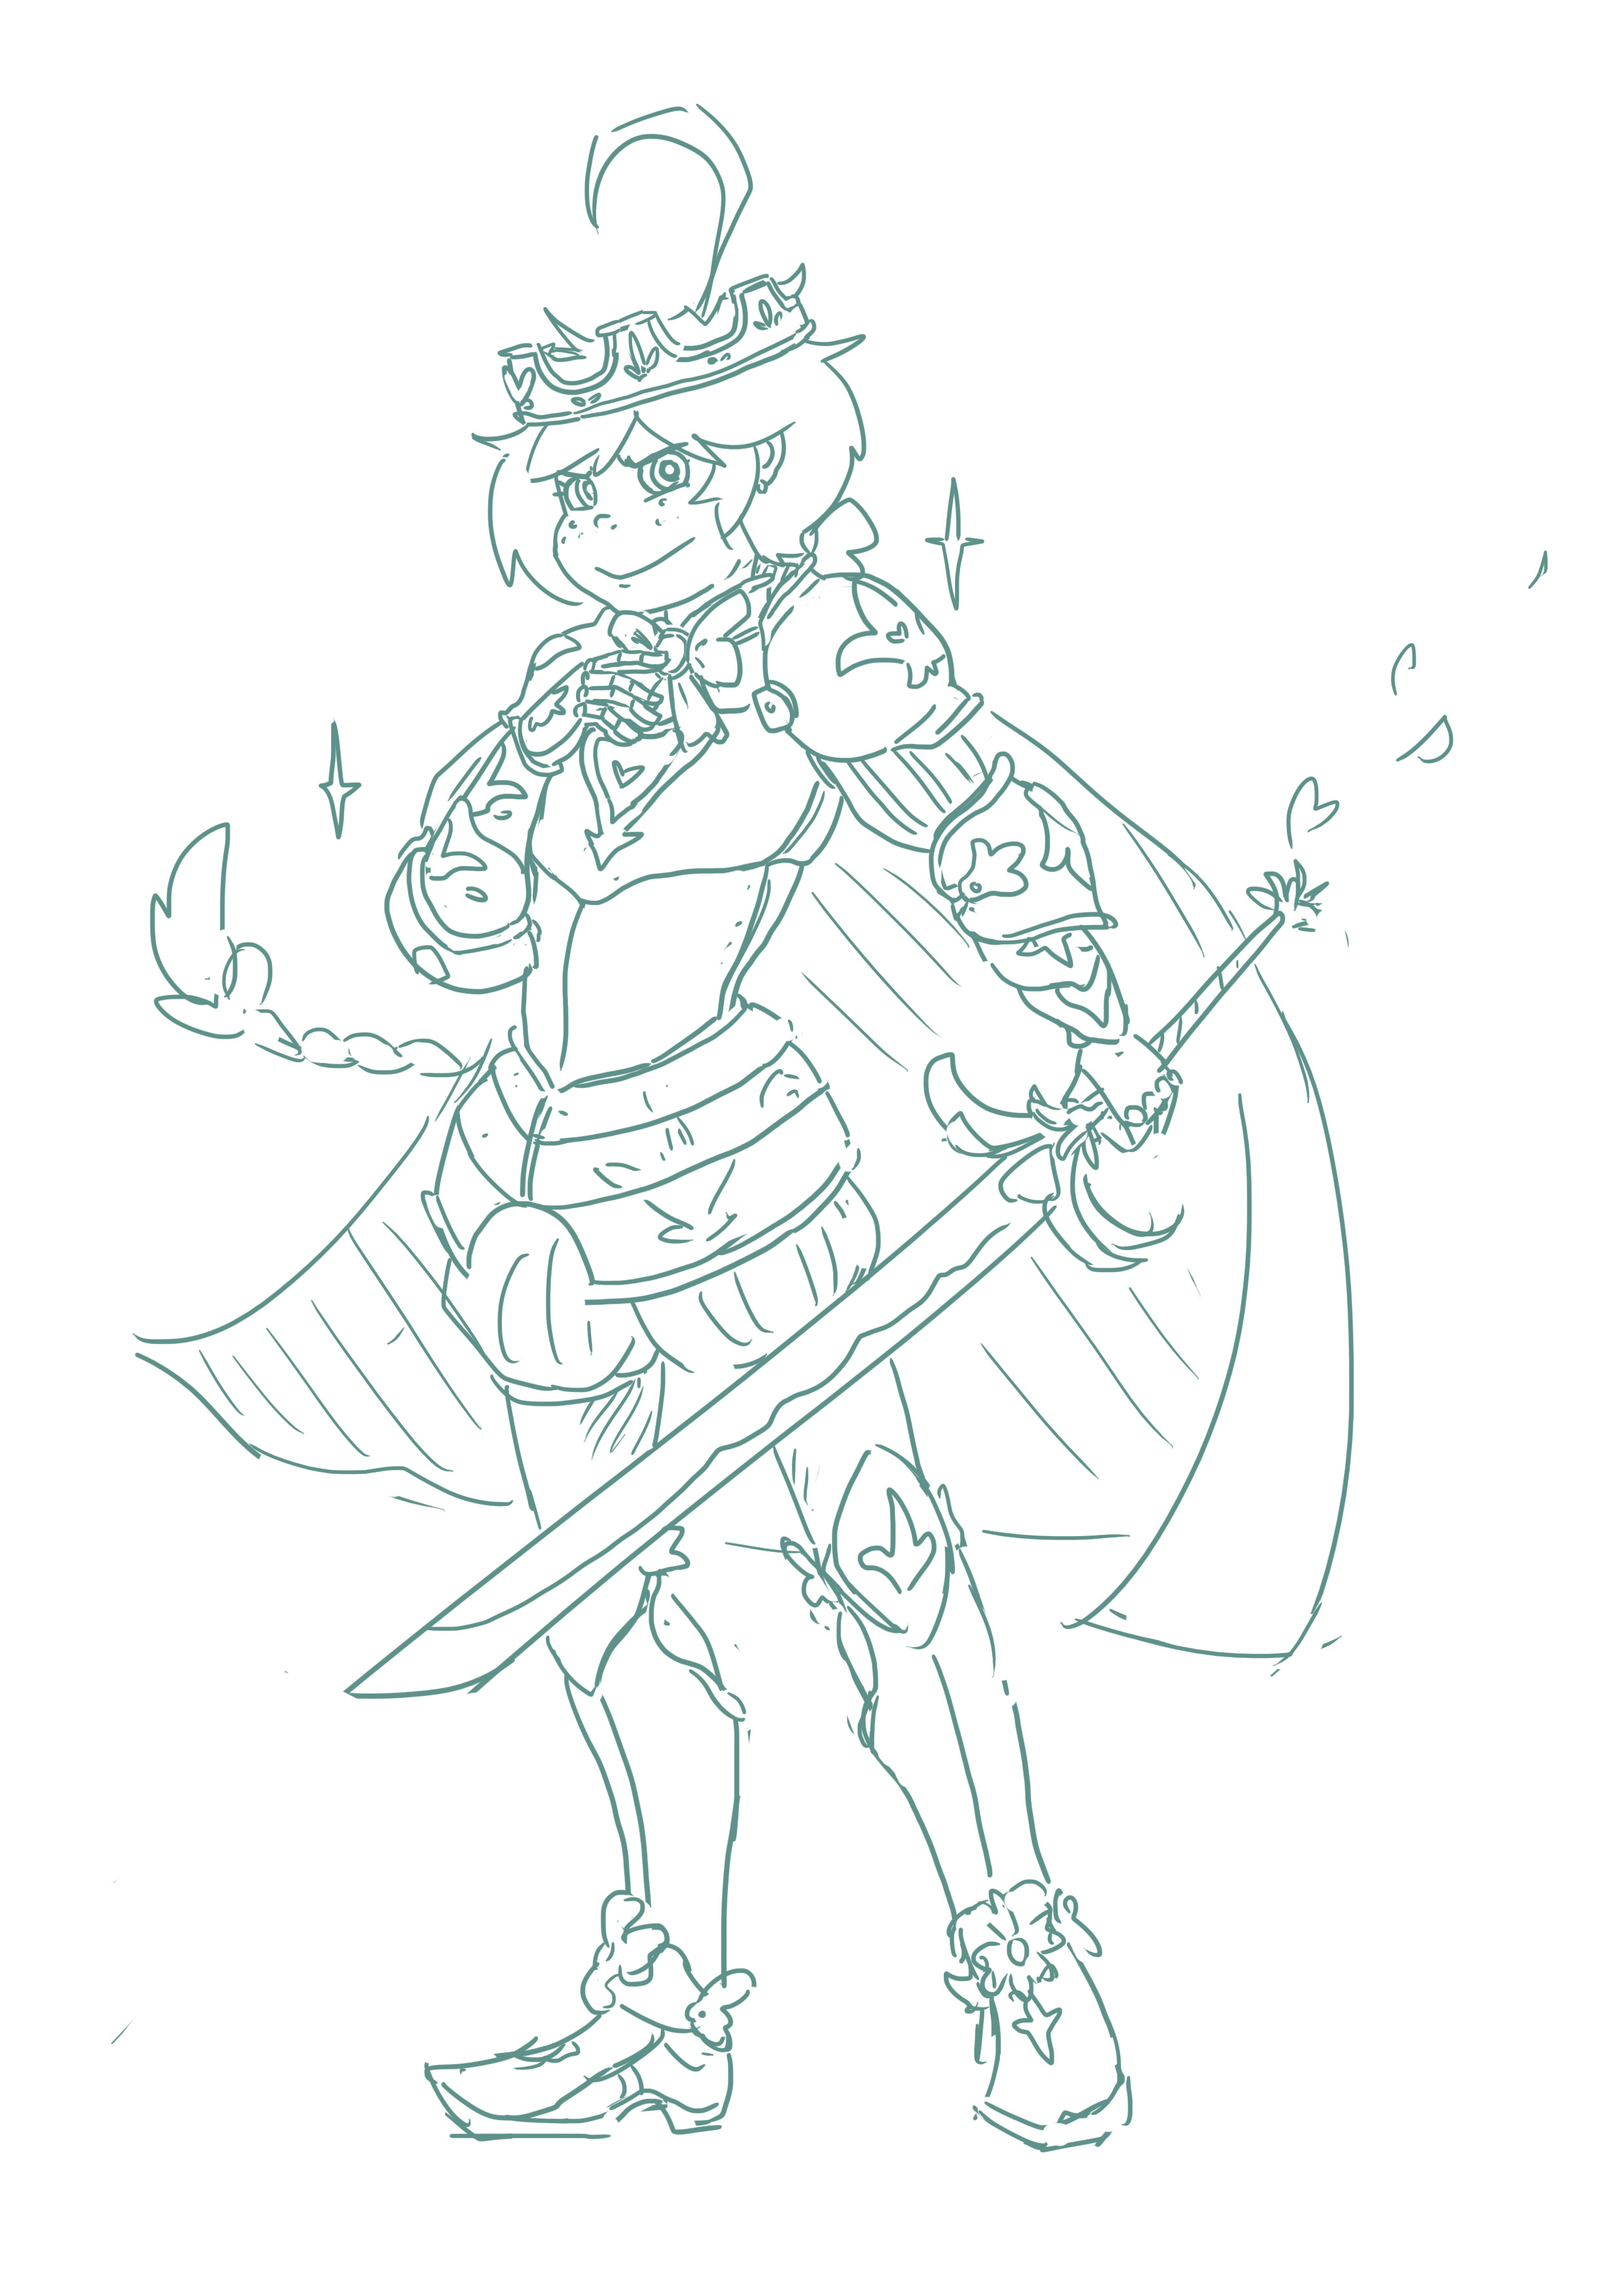 Using armor lessons from the Mark commission